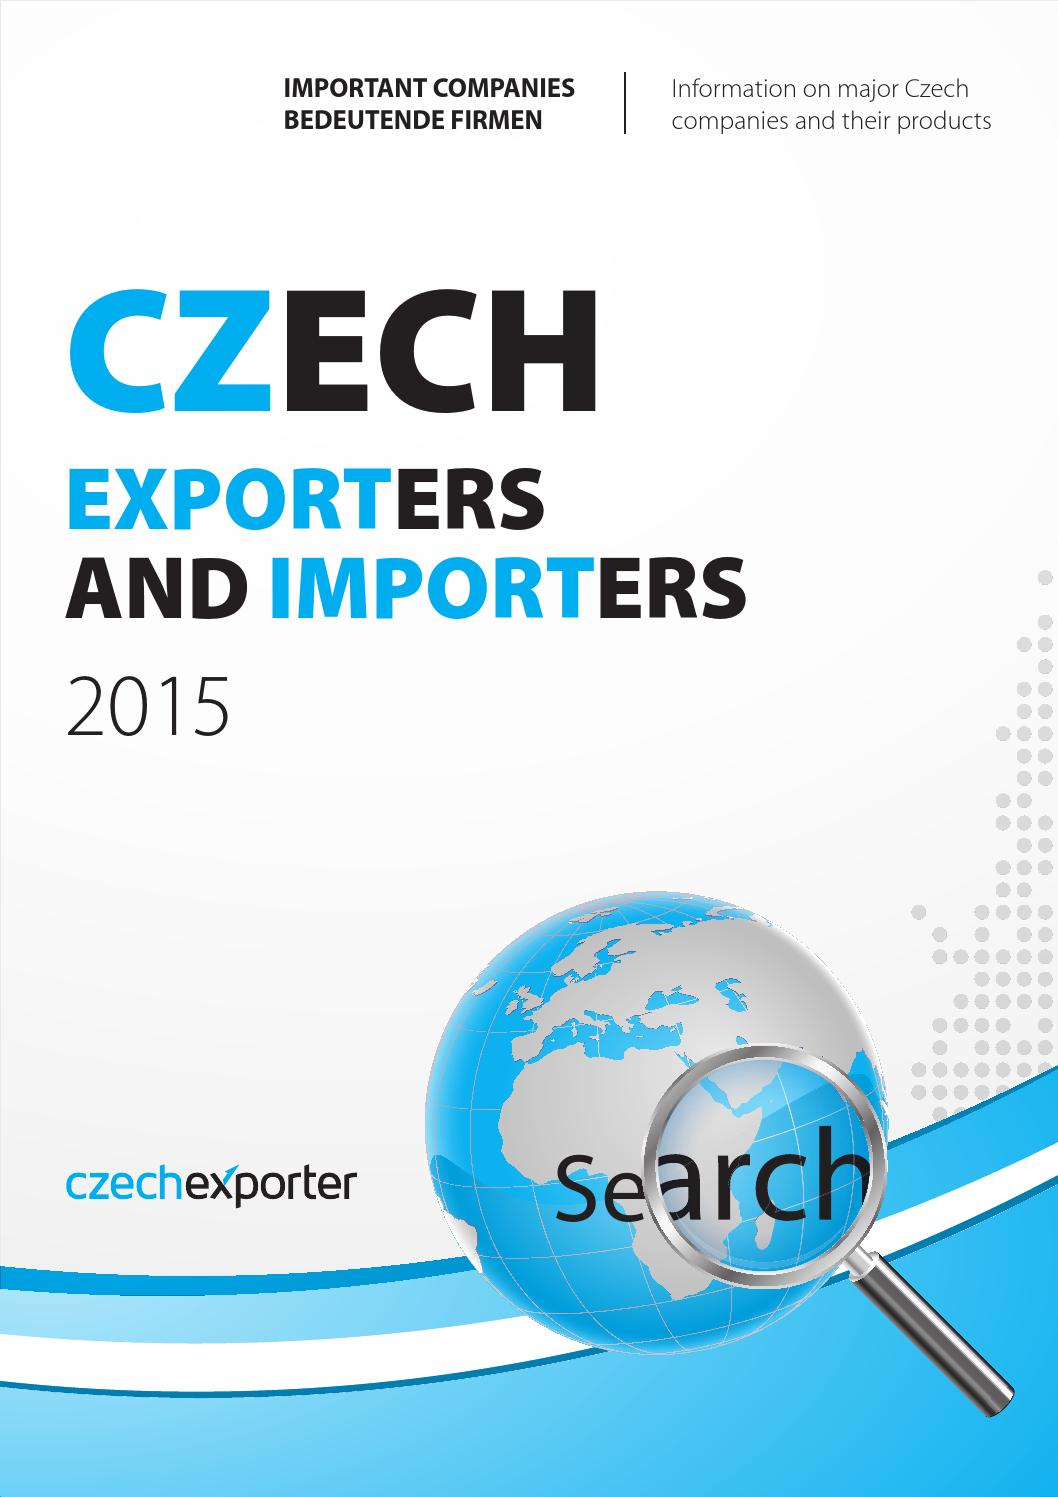 Czech Exporters And Importers Catalog 2015 By Mediatel Spol. S R.o.   Issuu